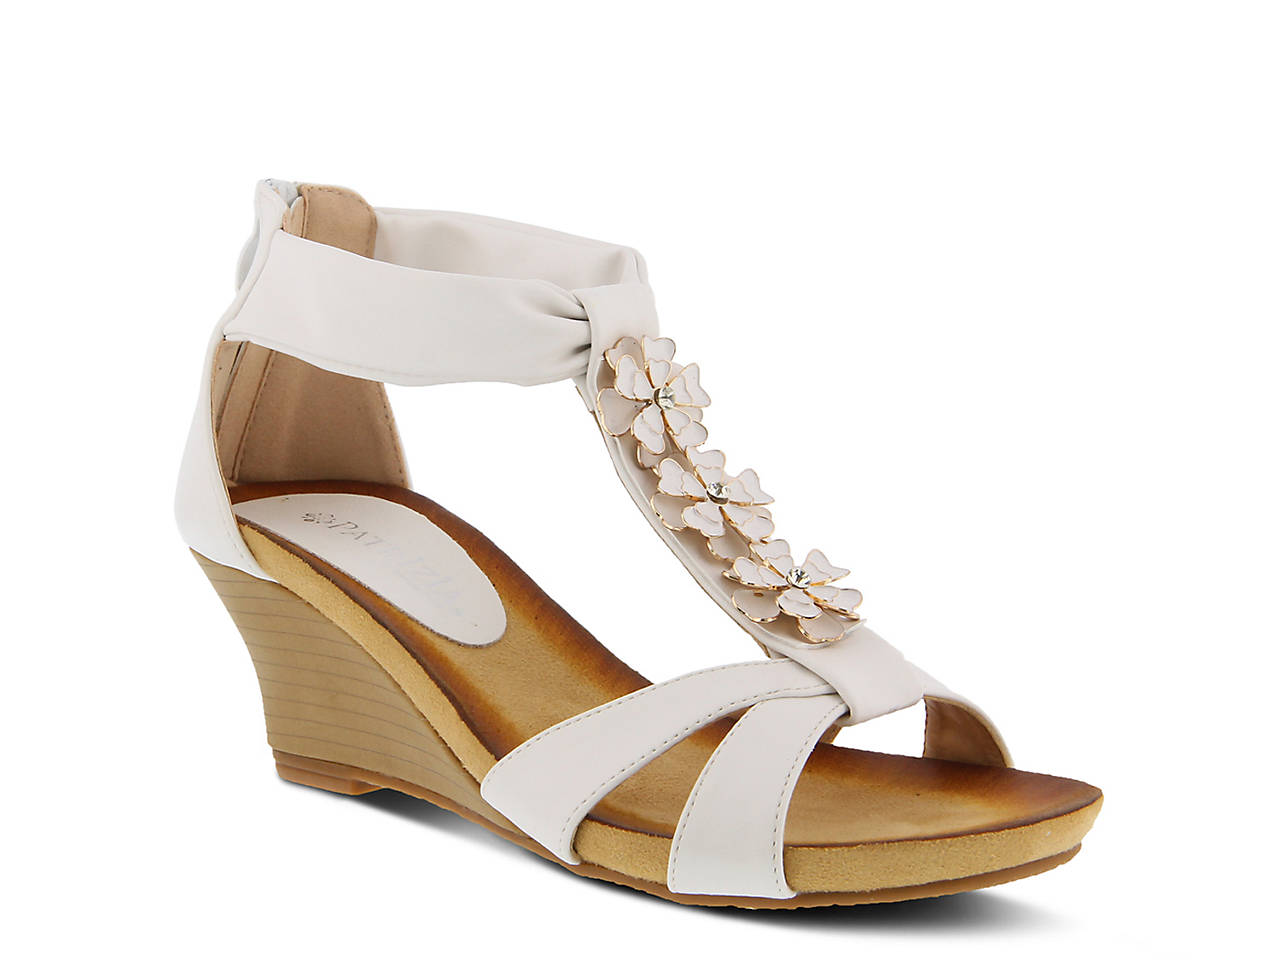 99a10a38da37 Patrizia by Spring Step Poppy Wedge Sandal Women s Shoes